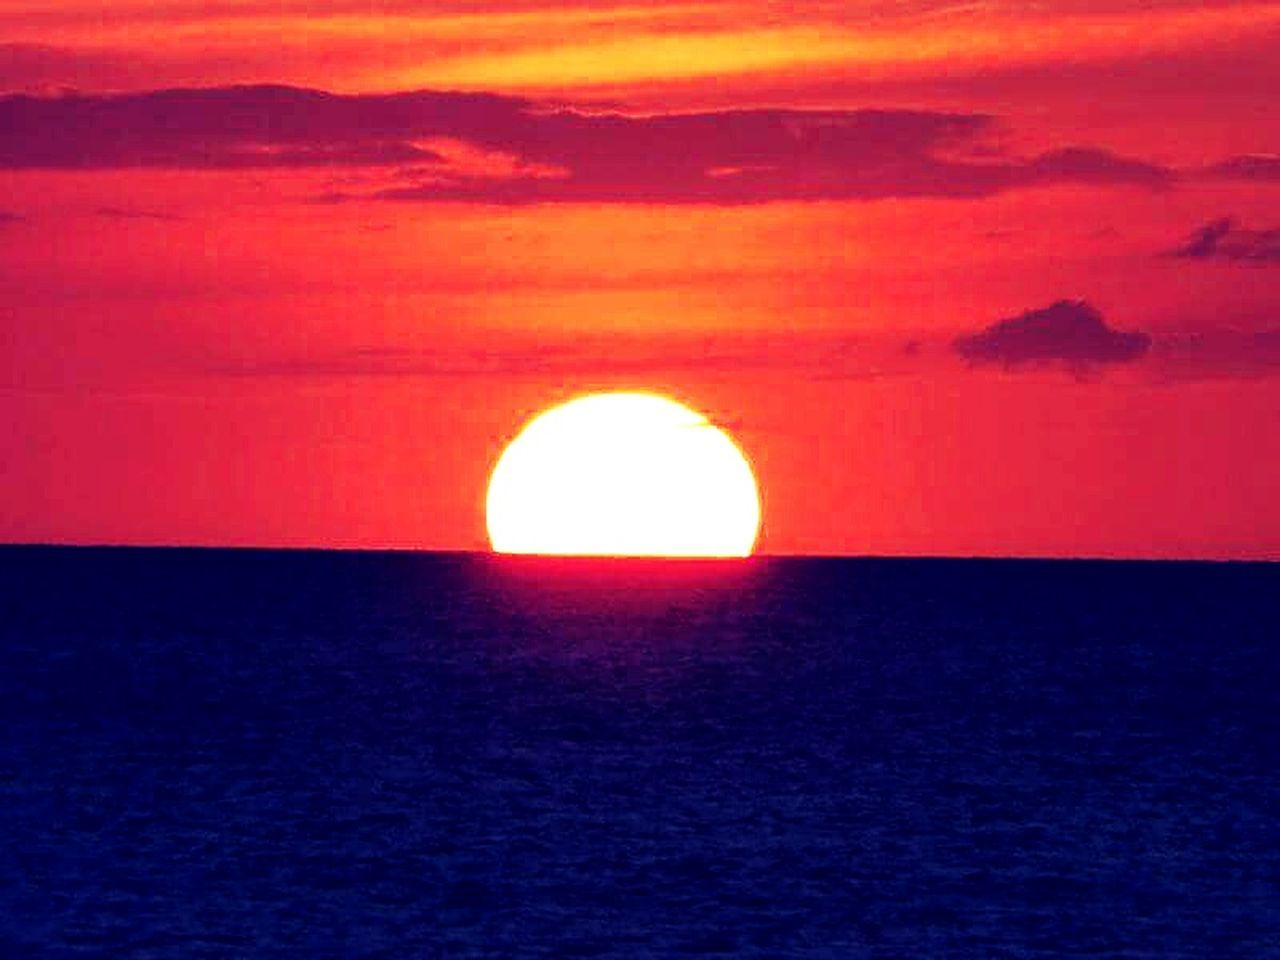 Sun Sunset Sun Going Down Clearwater Beach Florida Florida Sunset Sun Melting Into The Water Orange Sky Enjoying Life Color Relaxing Beautiful Awesome Older Than Antiquity . Goodbye Sun Goodbye Day